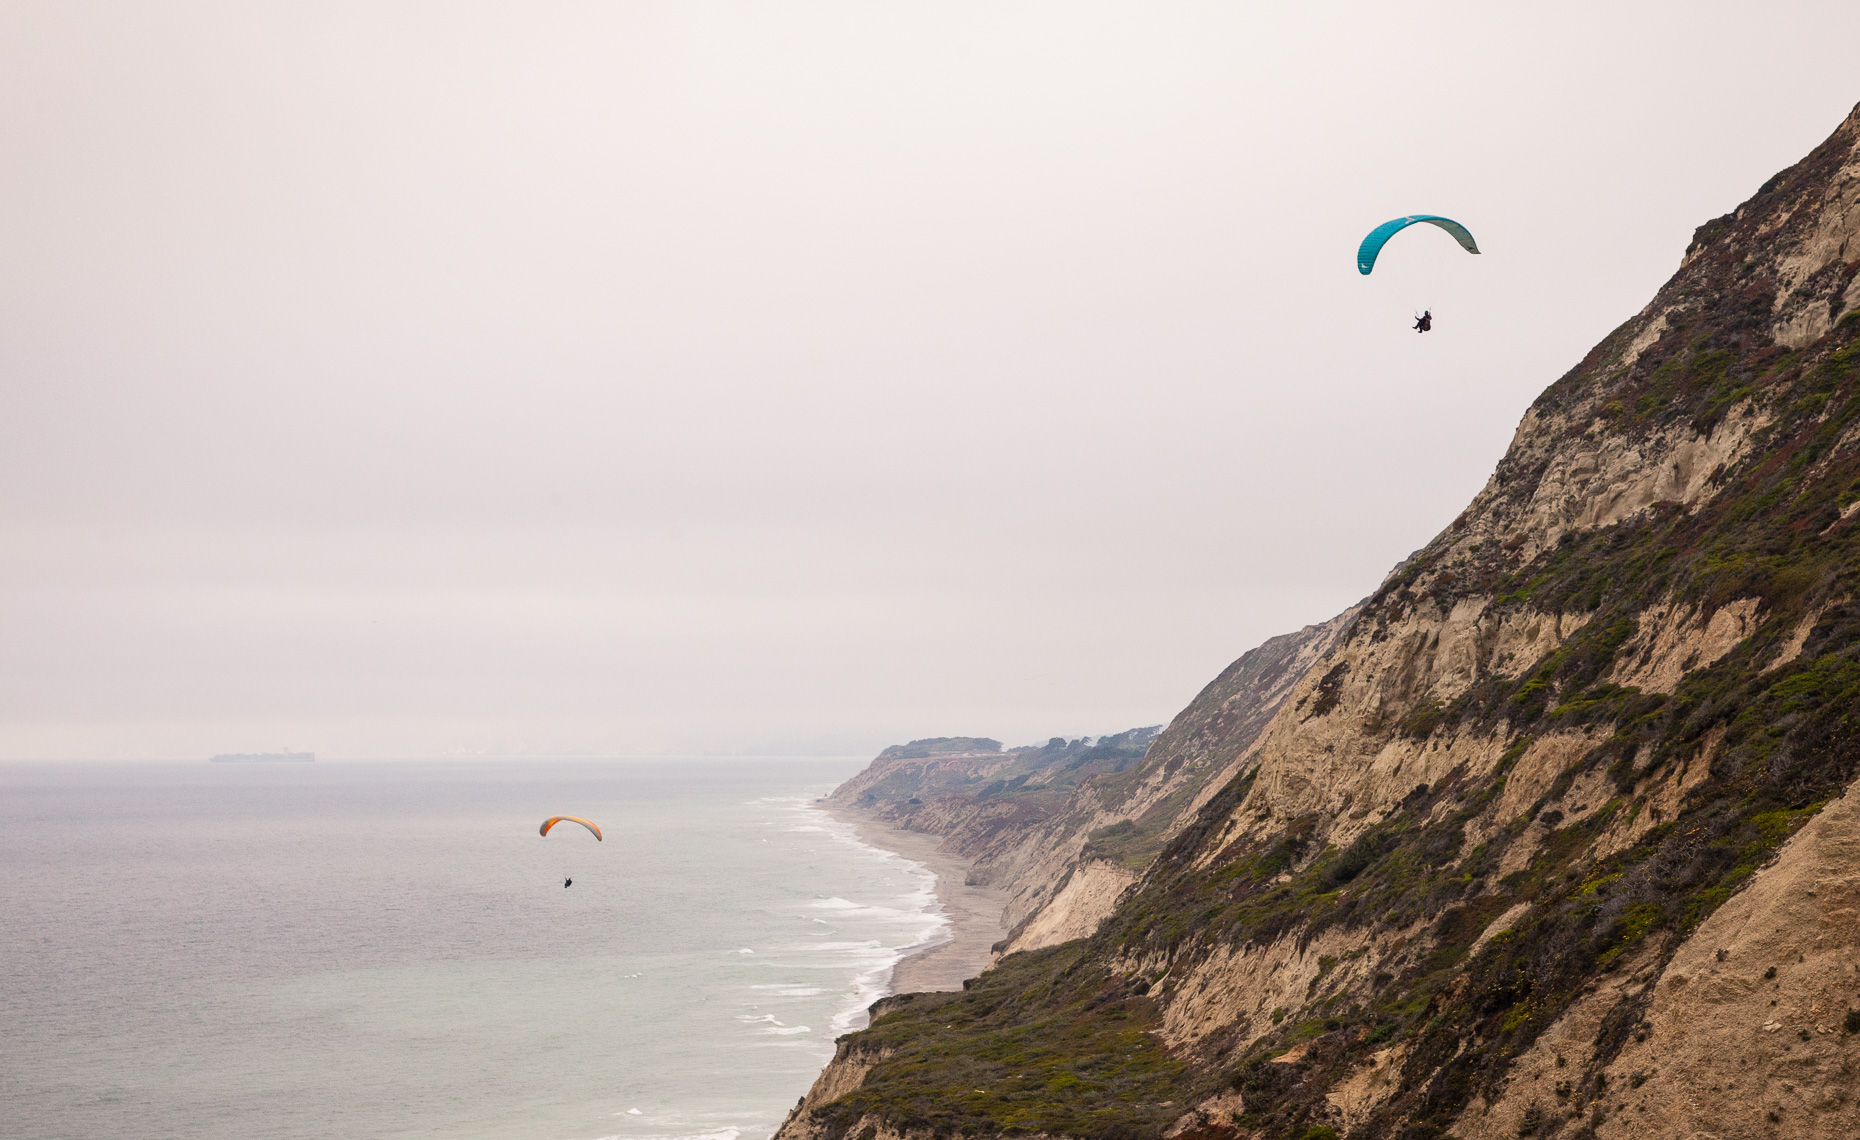 160824_Pacifica_Paraglide_6249